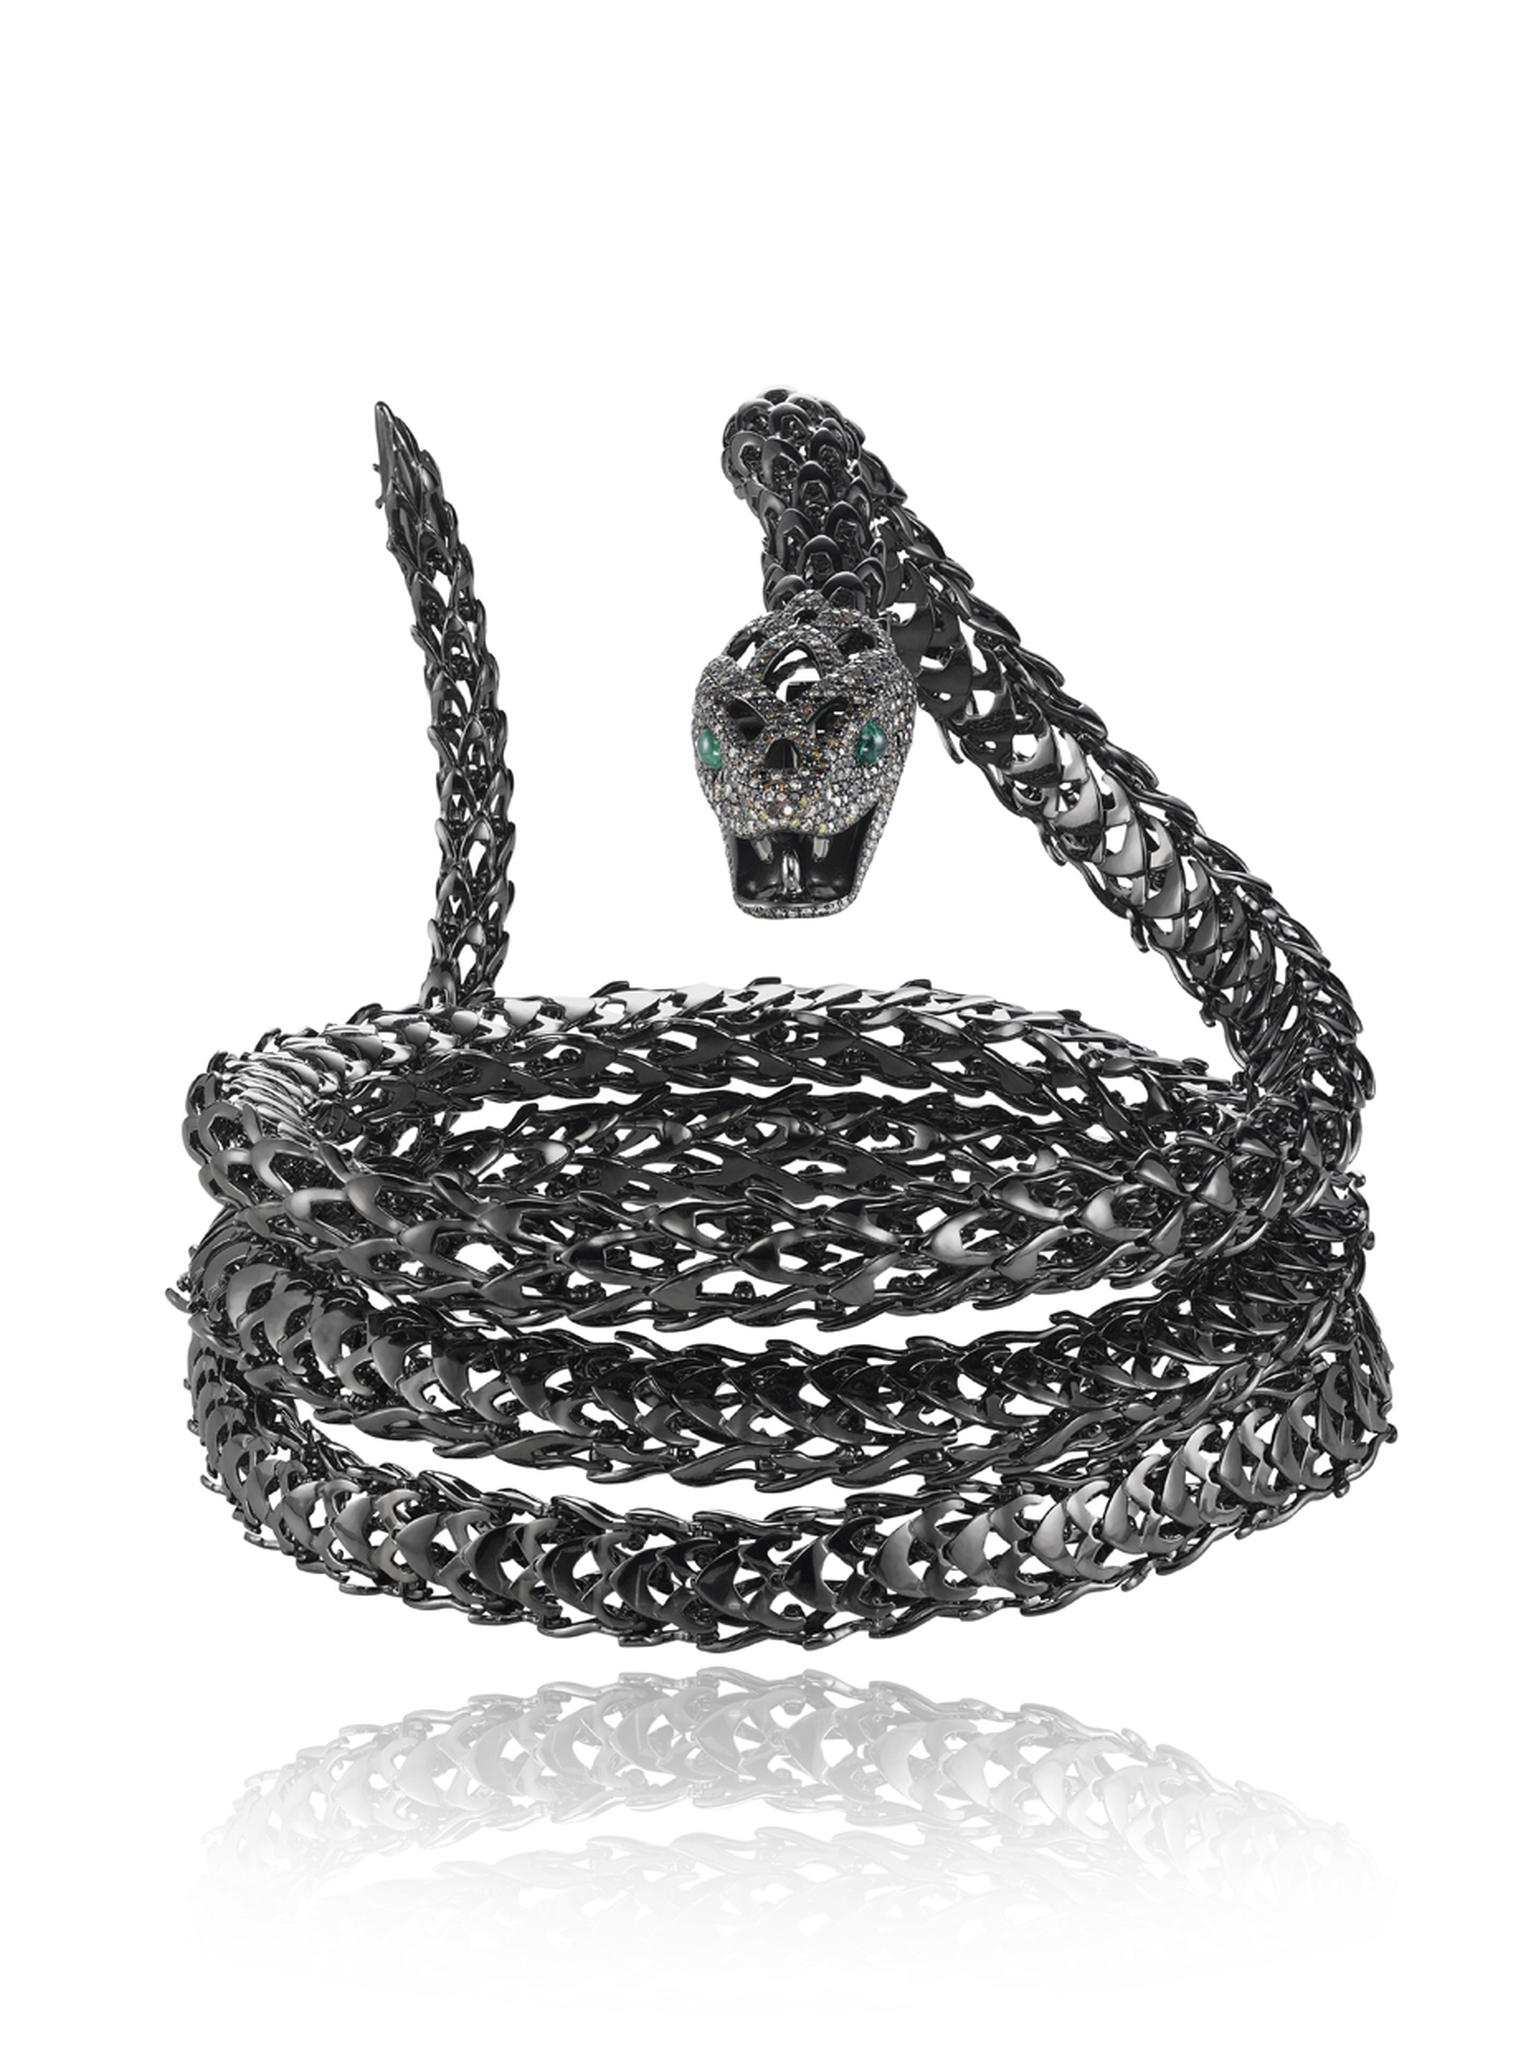 The Harumi for Chopard Mamba snake in blackened gold can be worn as a belt, bracelet, necklace or headpiece